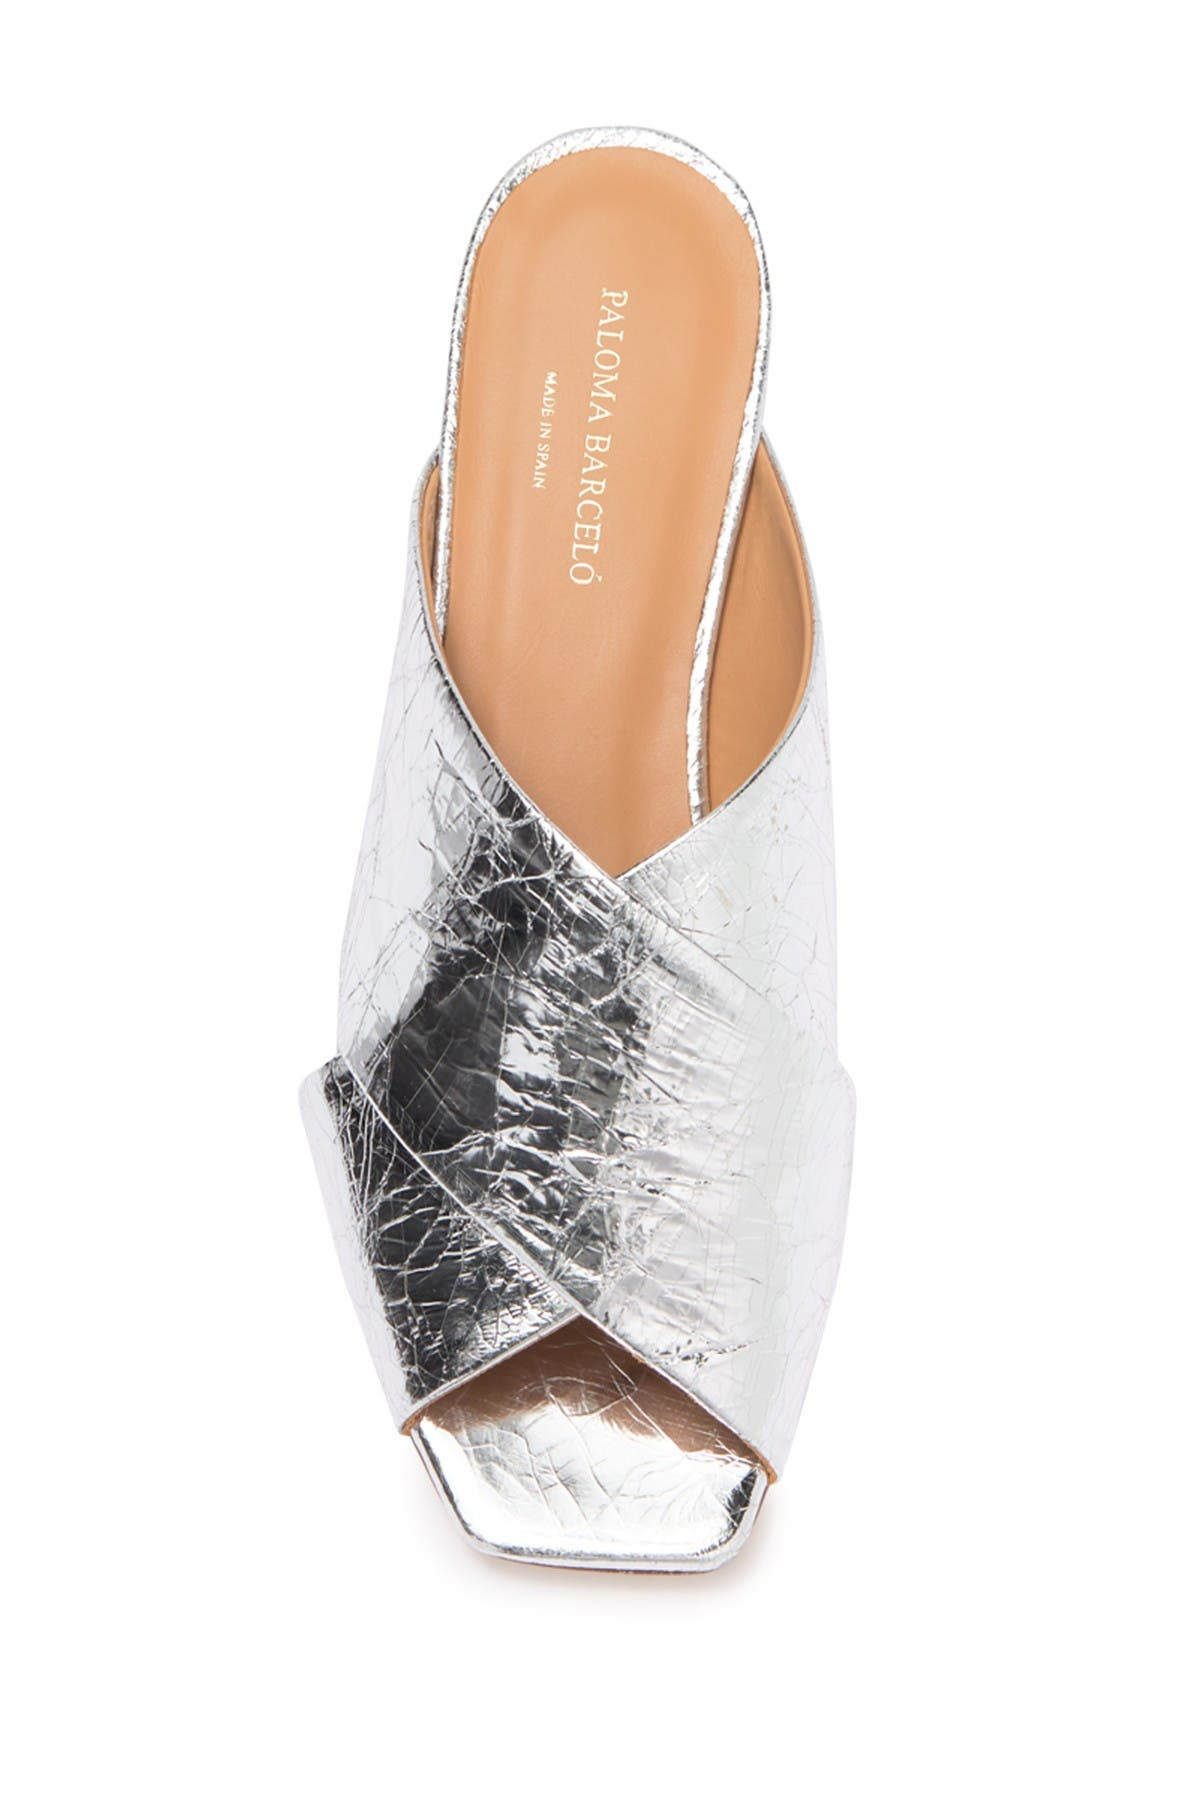 Image of Paloma Barcelo Briseda Metallic Leather Mule